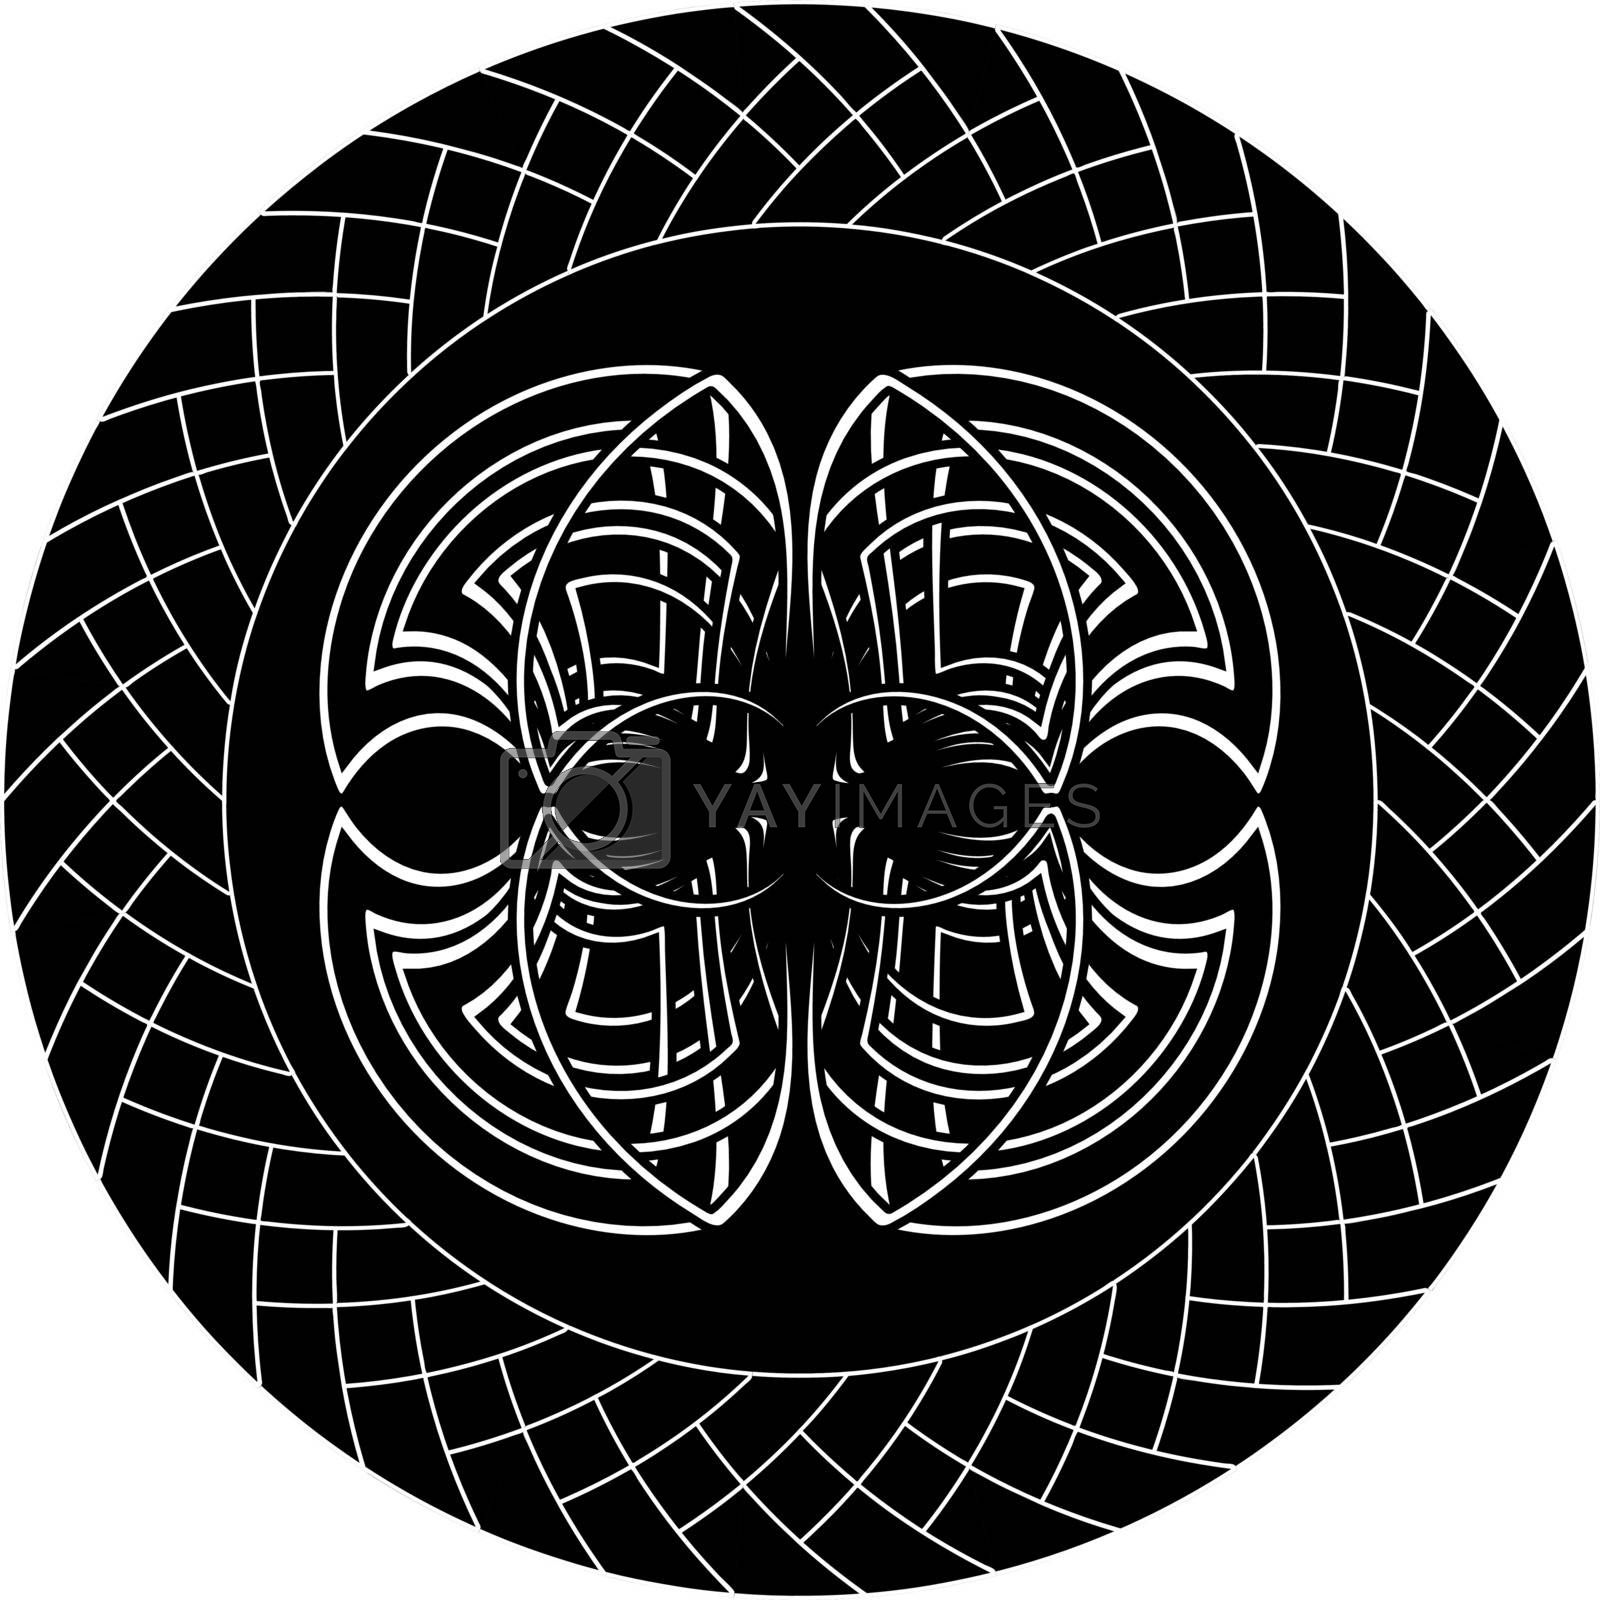 dark gothic illustration with abstract celtic symbol in knotted circle